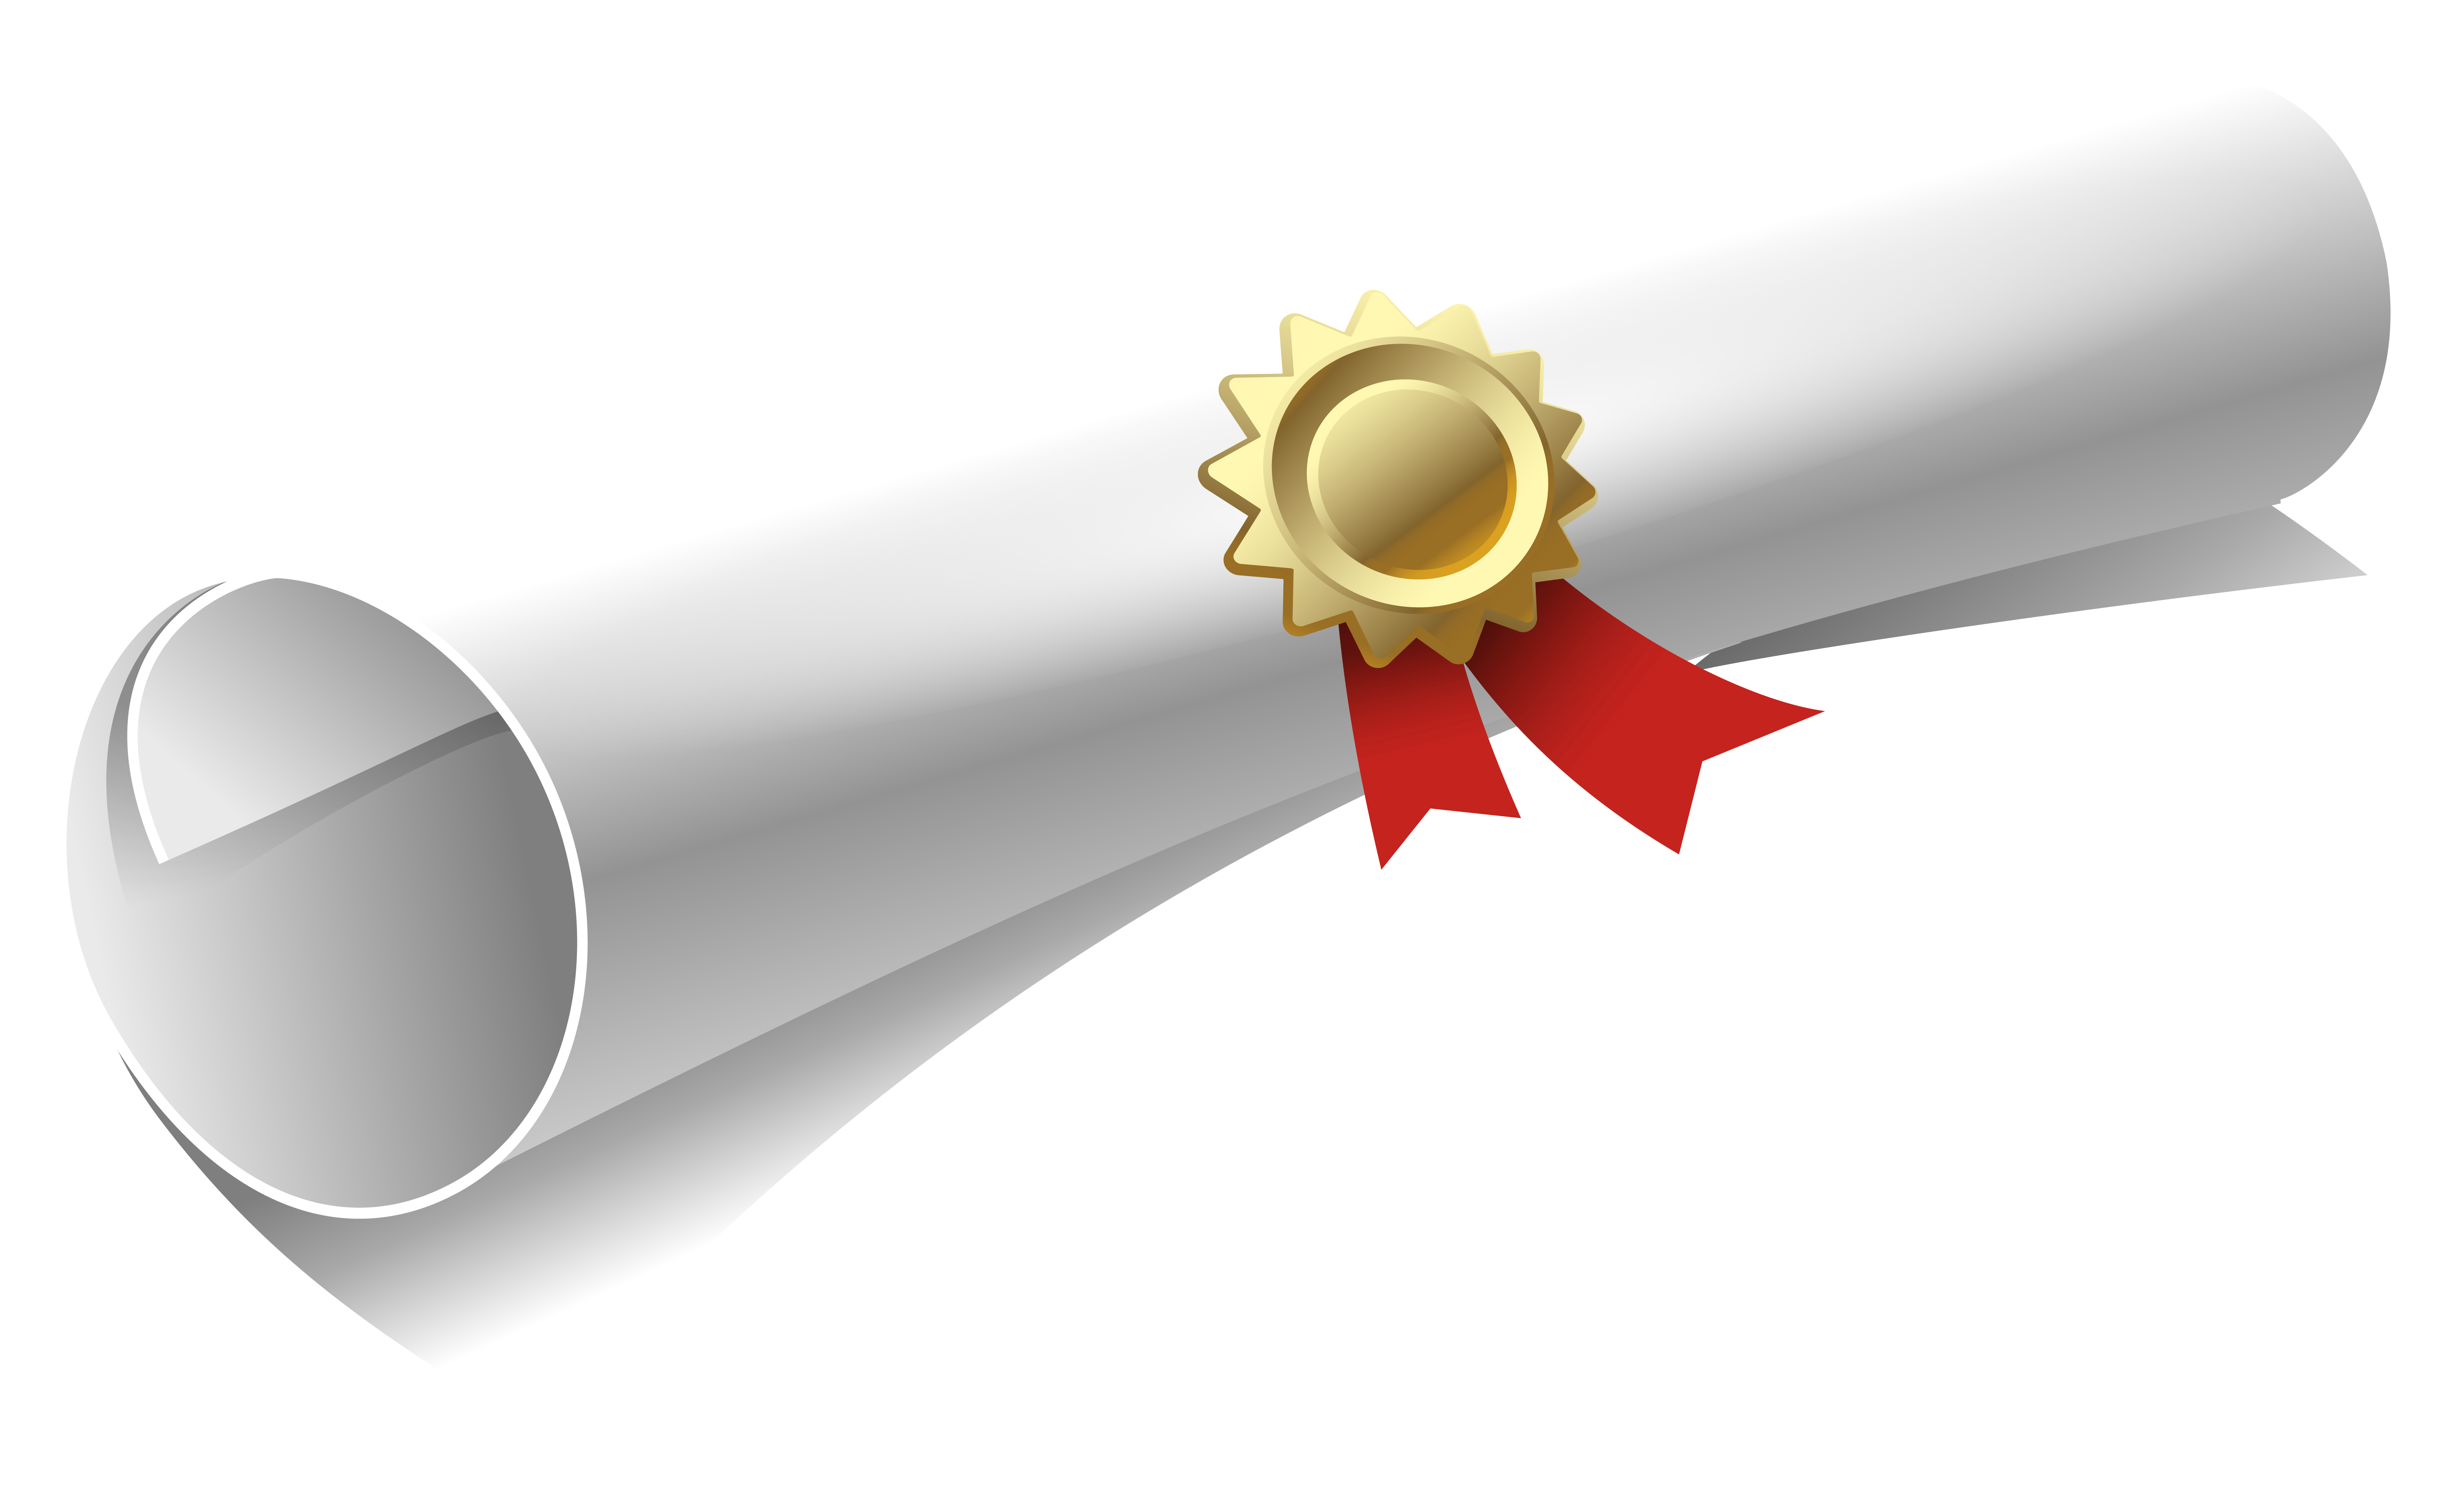 Diploma clipart rolled up.  collection of transparent